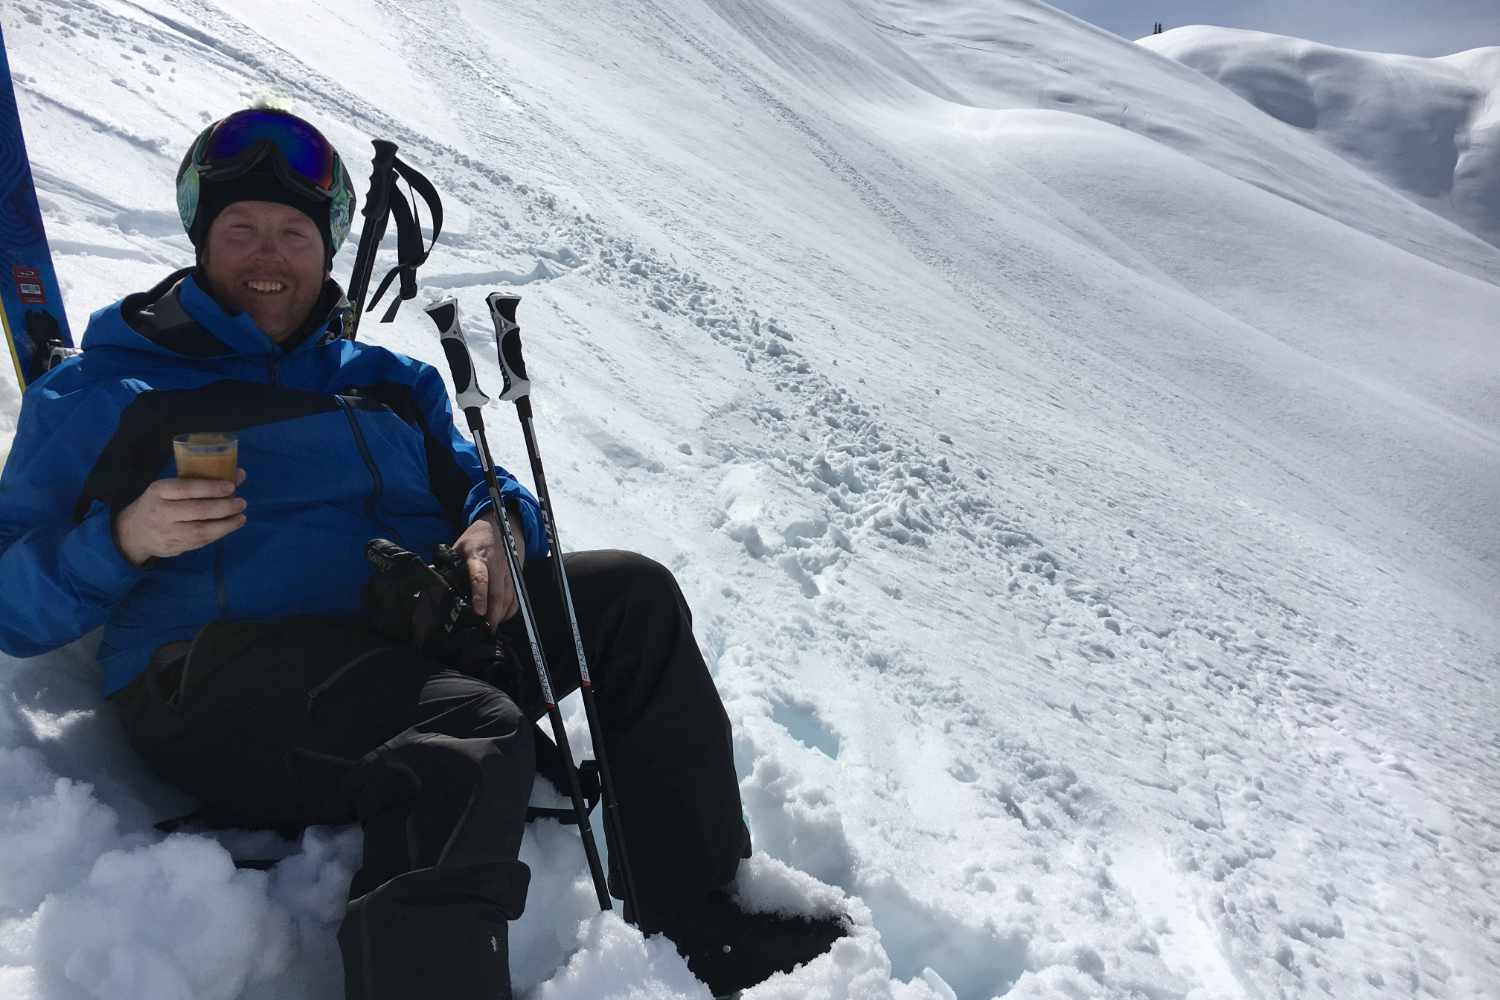 chubby skier on the slopes